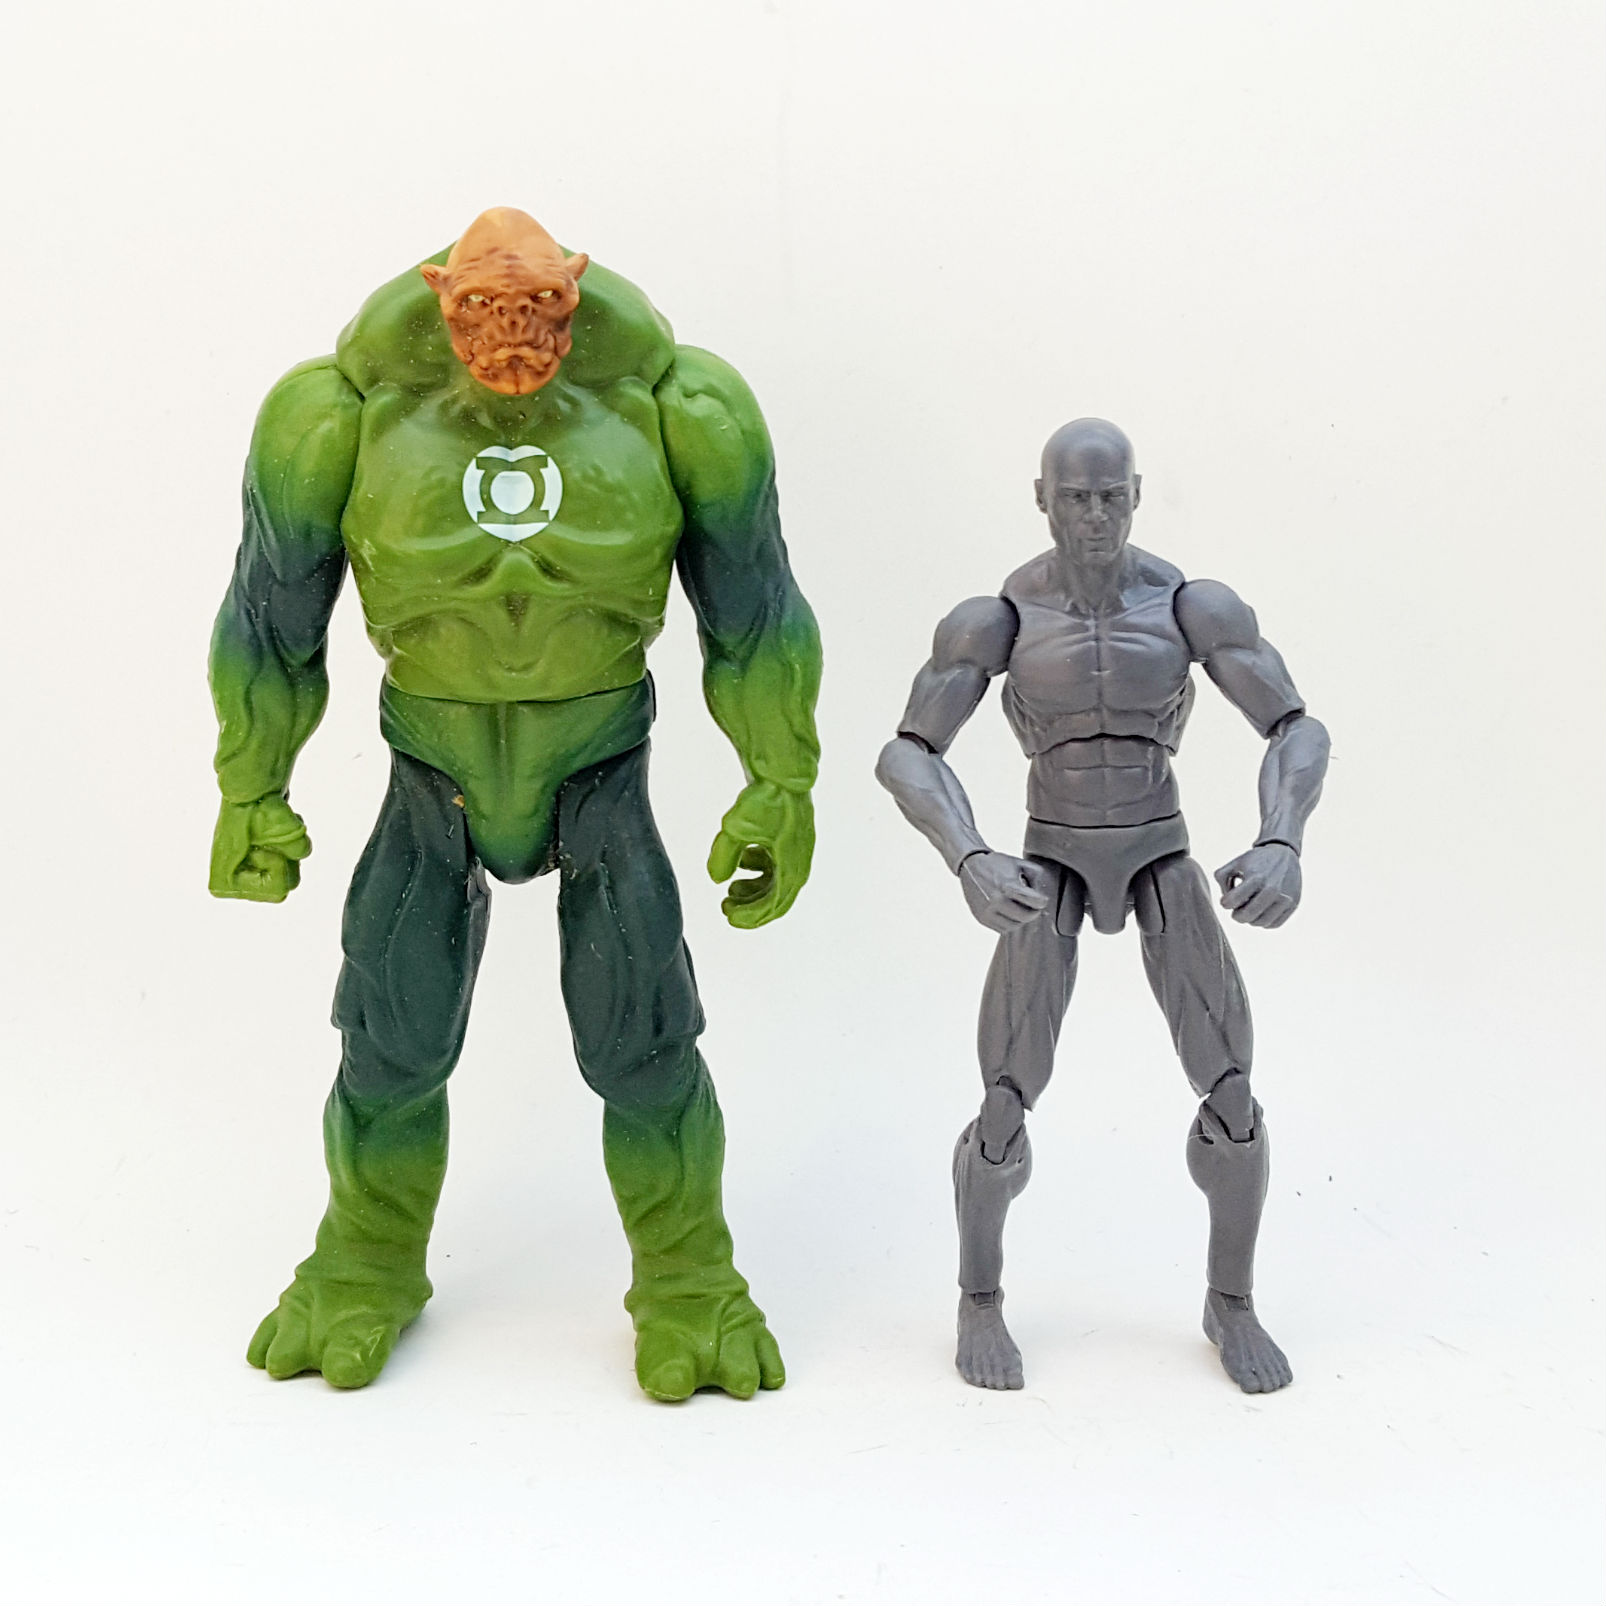 1:18 DC Comics Green Lantern Action Figure Checklist